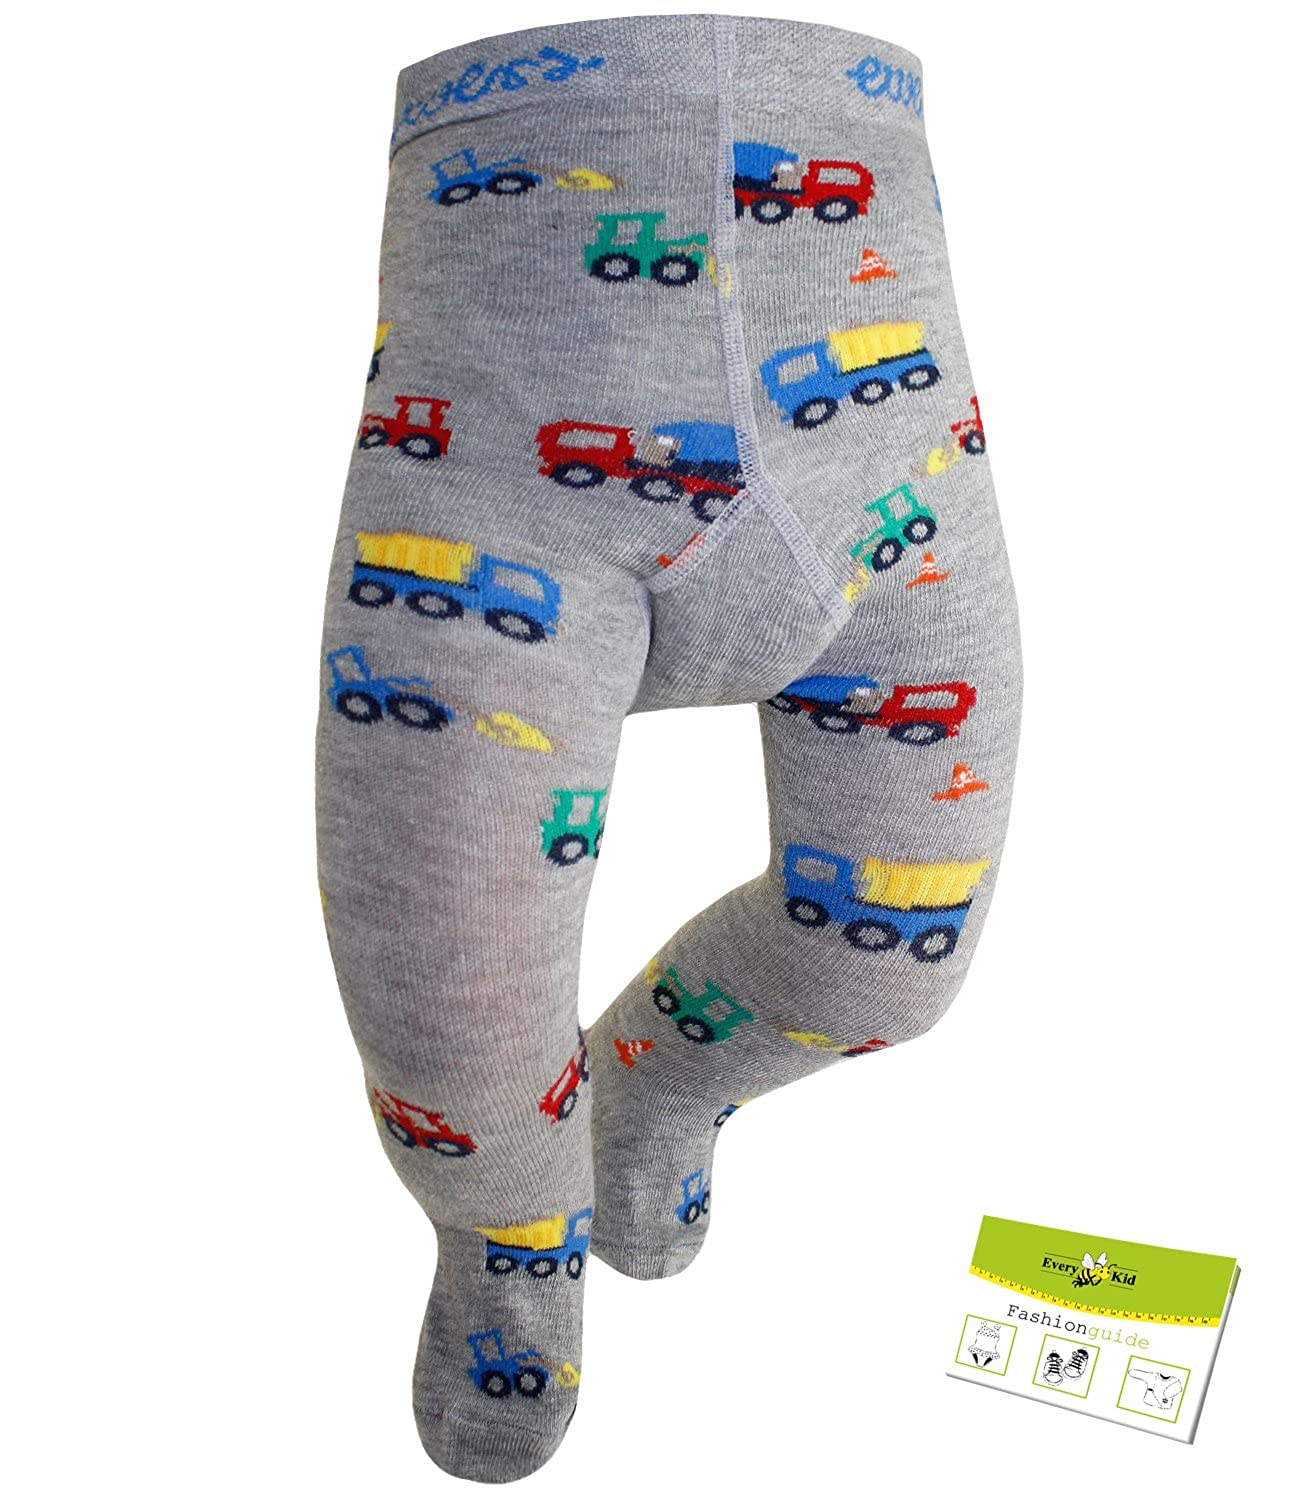 Ewers Boys Pantyhose Tights Brand Toddler Baby Building Site With Butt Motif For Children (EW-905008-S17-JU1) incl. EveryKid-Fashionguide